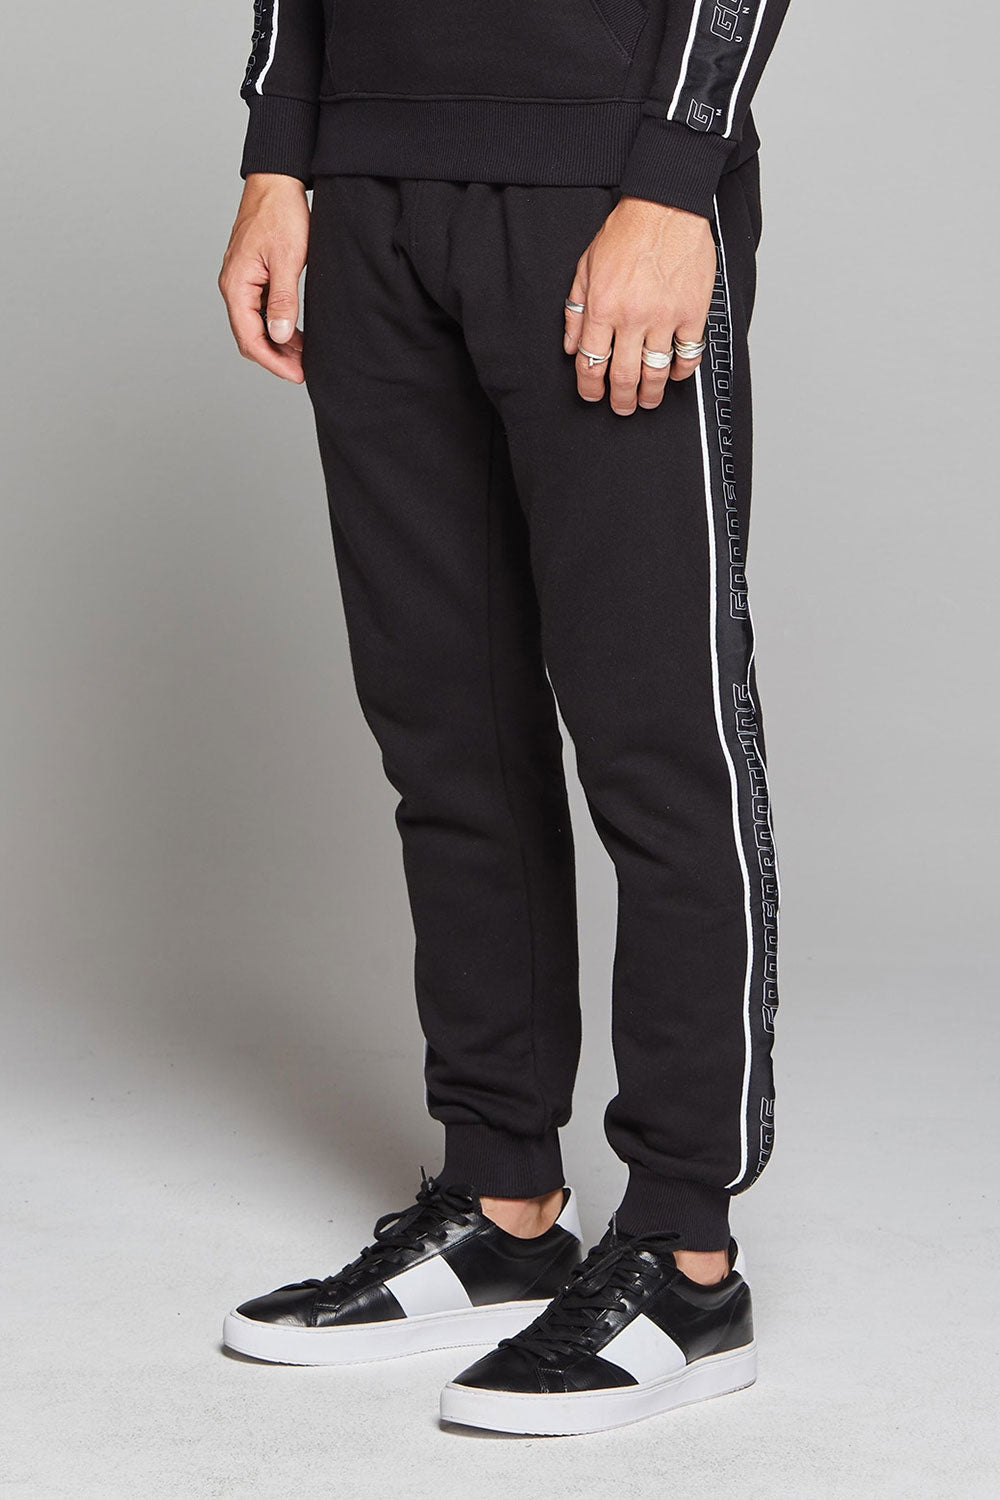 Good For Nothing Dynamic Monochrome Joggers - Black